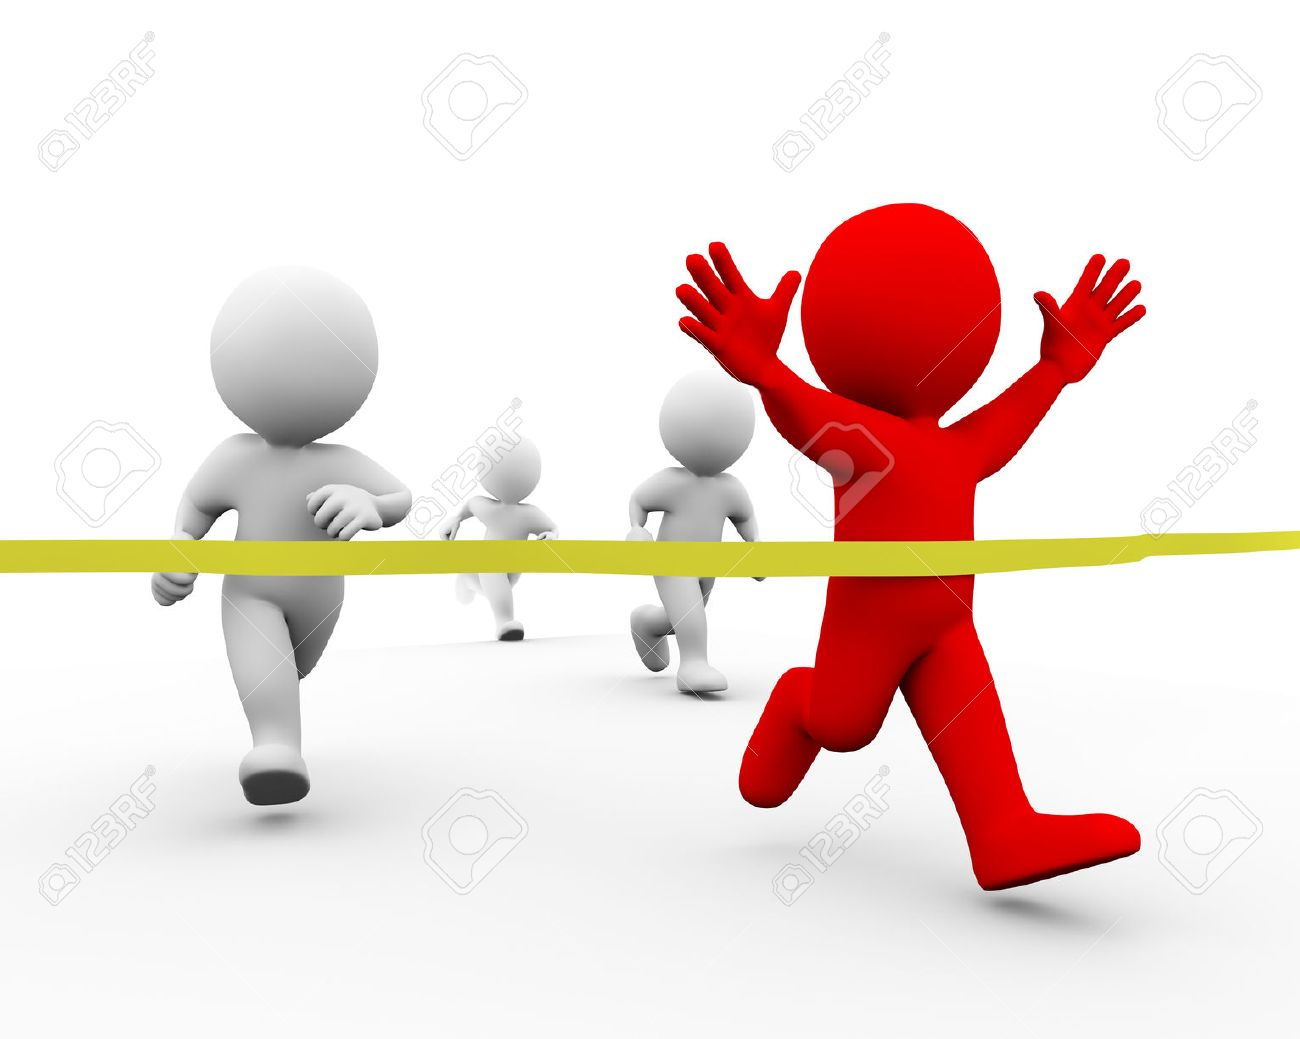 43946855-3d-illustration-of-winner-man-racer-crossing-finish-line-ribbon-concept-of-race-sport-competition-wi